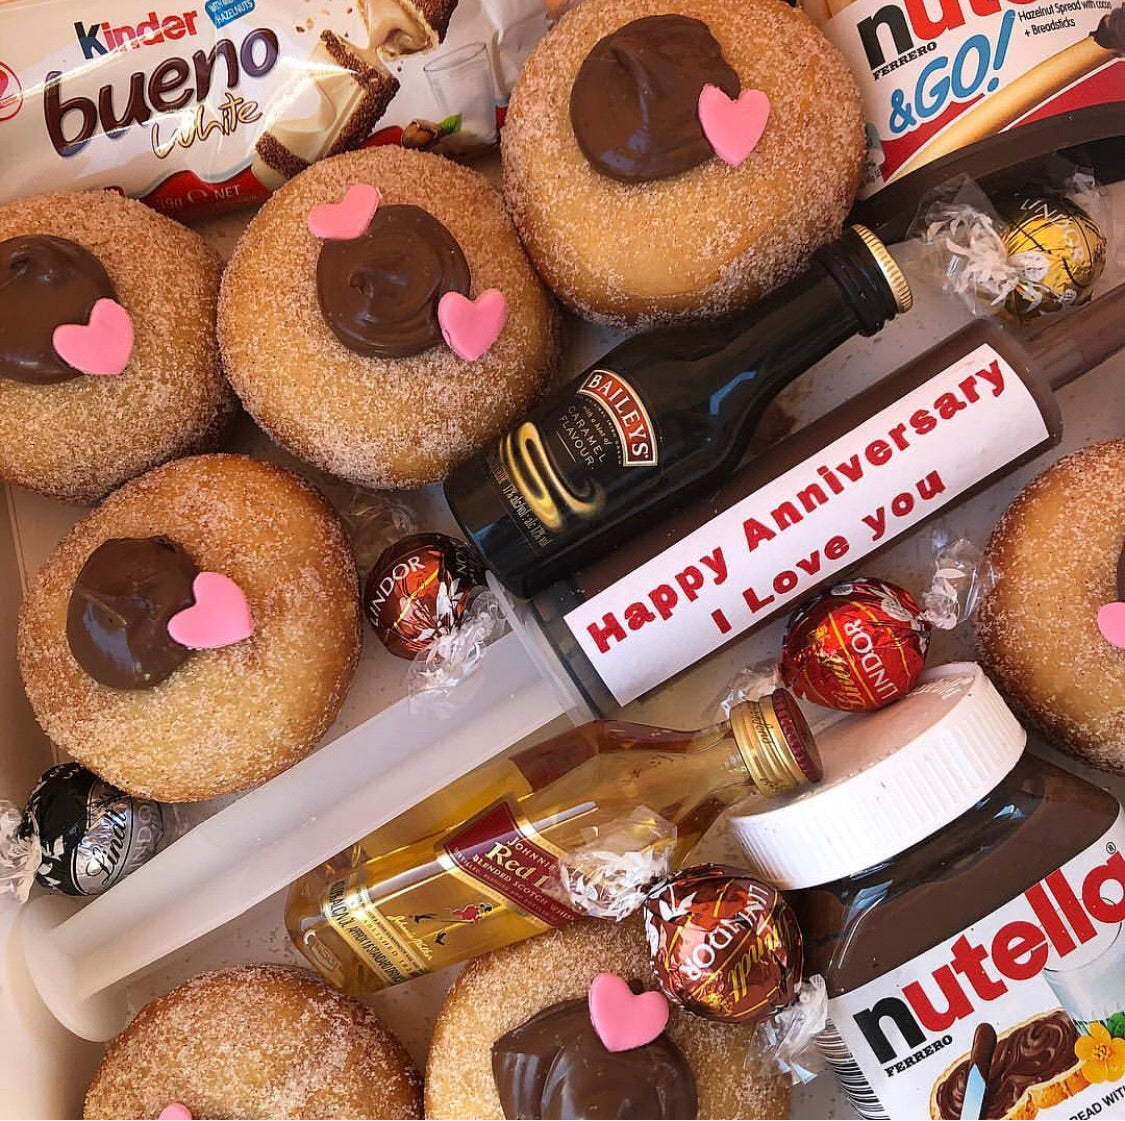 Delivering Donut Bouquets Nutella syringe and Nutella Donut Bouquets Dessert Box